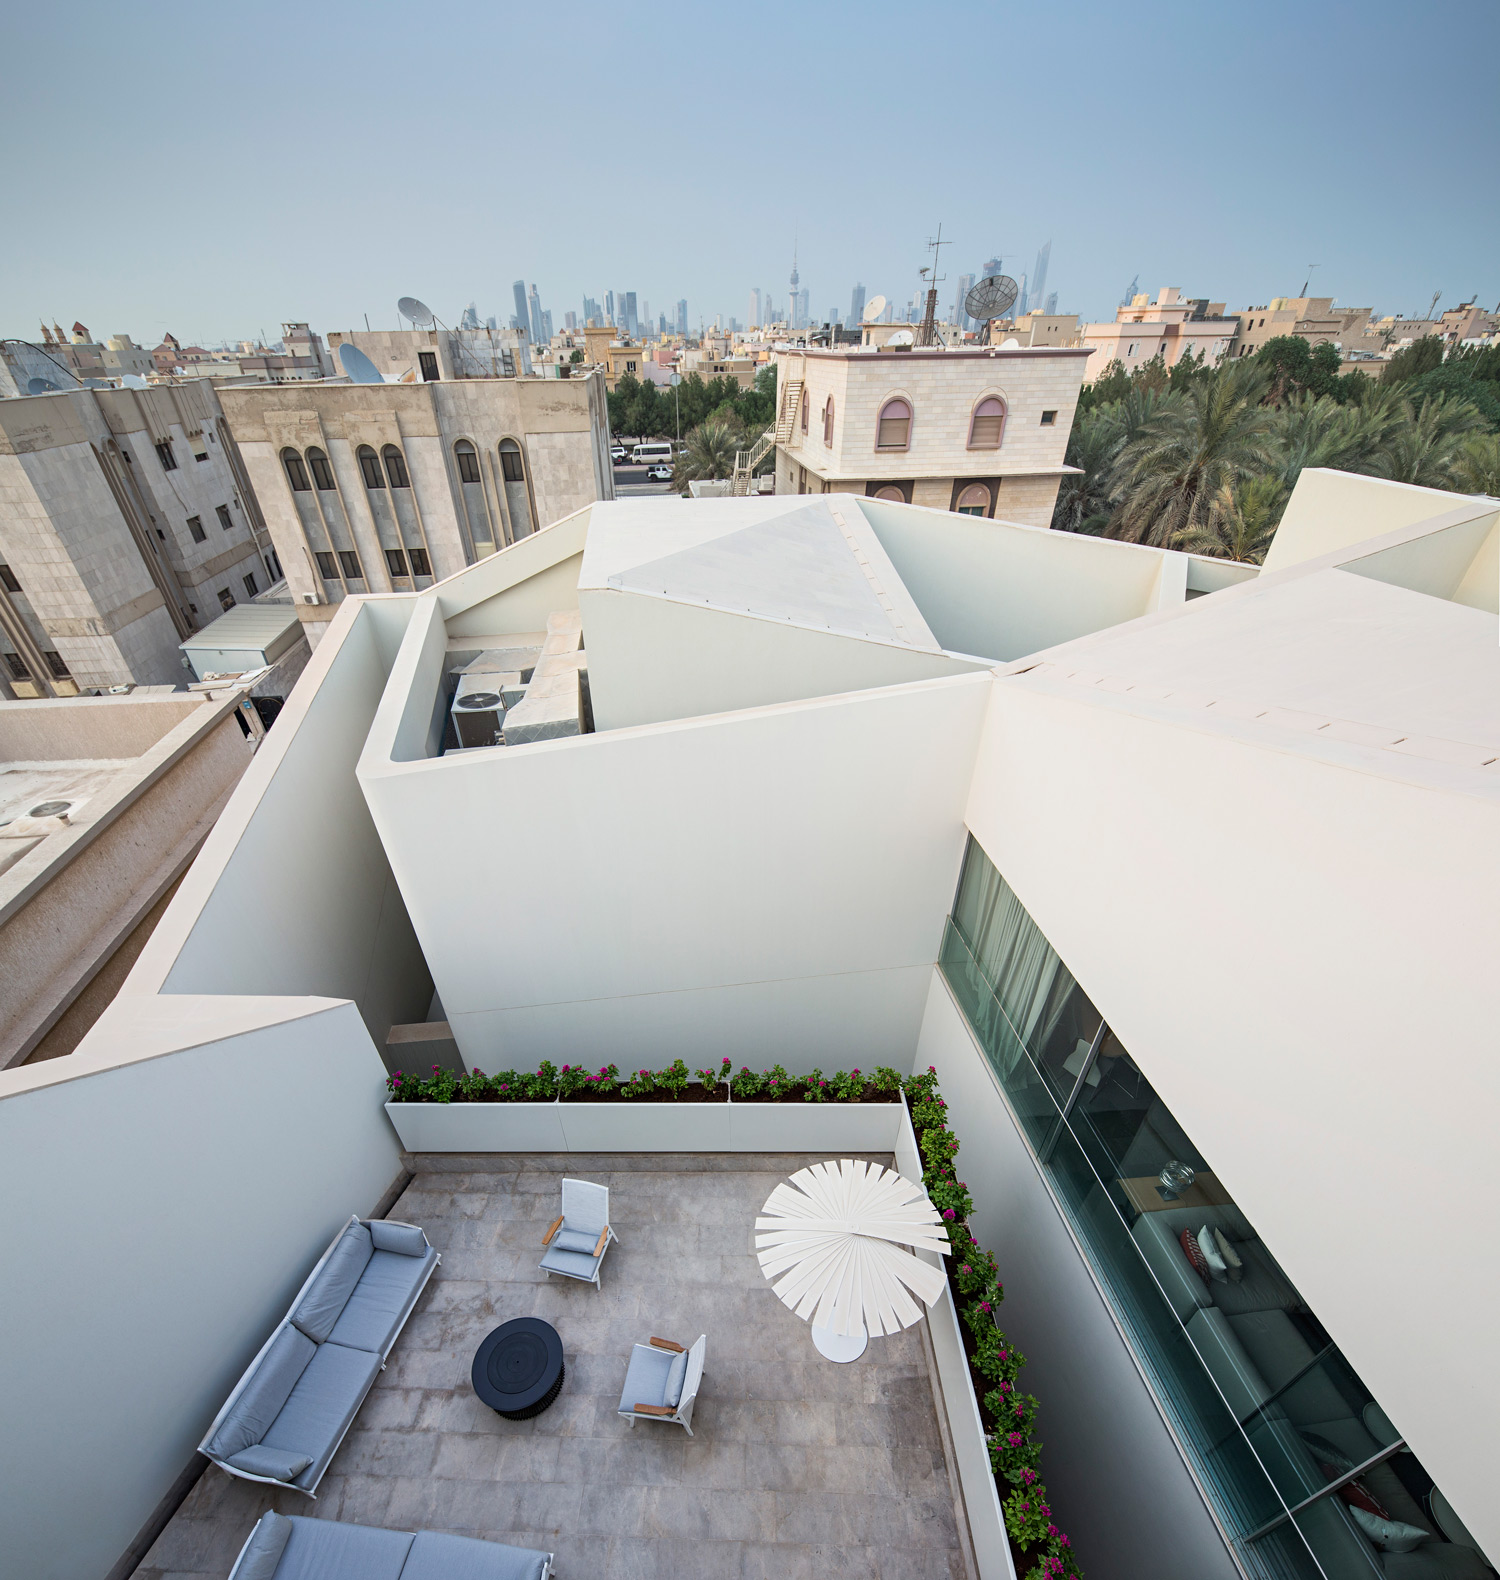 AGI_WALL_HOUSE_KUWAIT_PAN_081015_0018